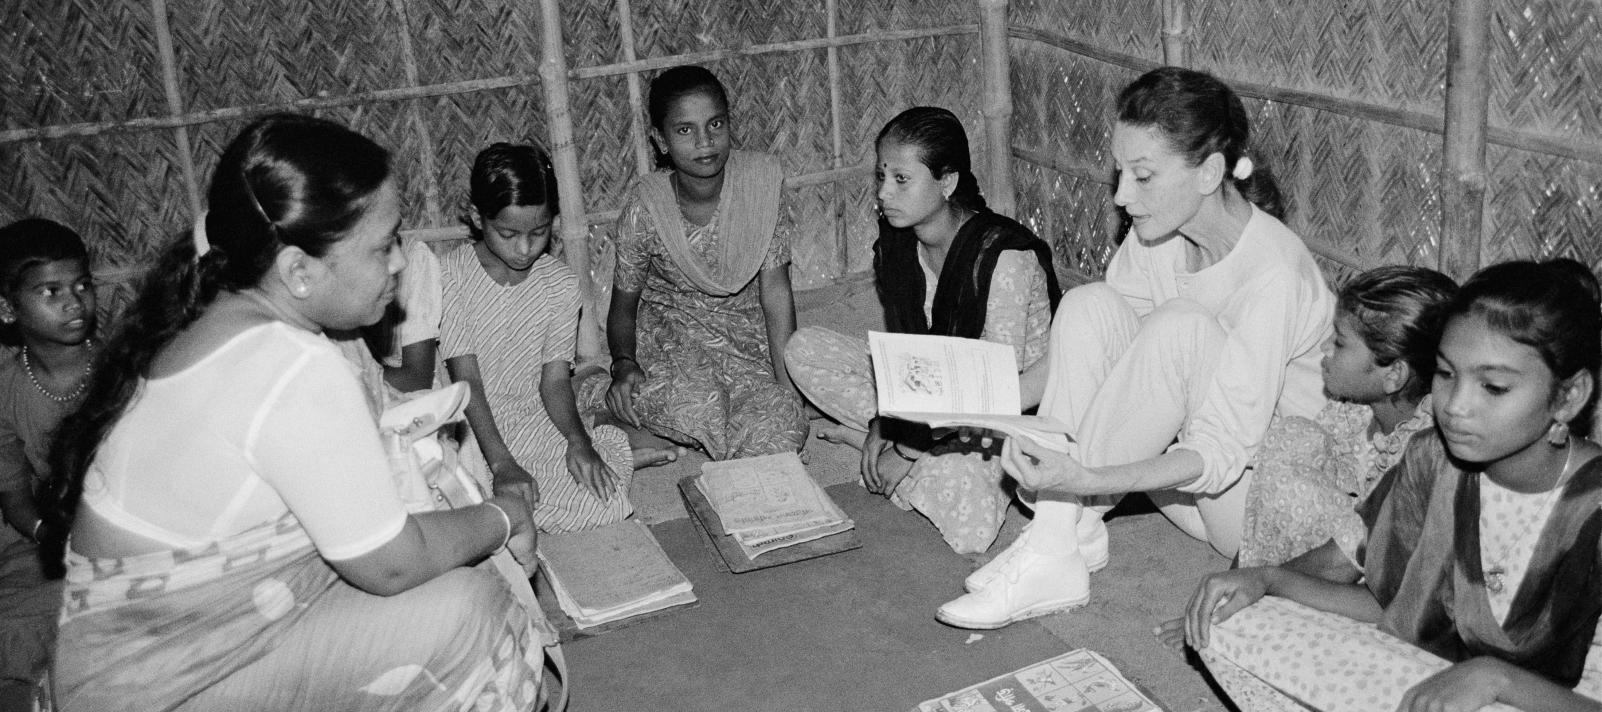 UNICEF has been working in Bangladesh since 1952